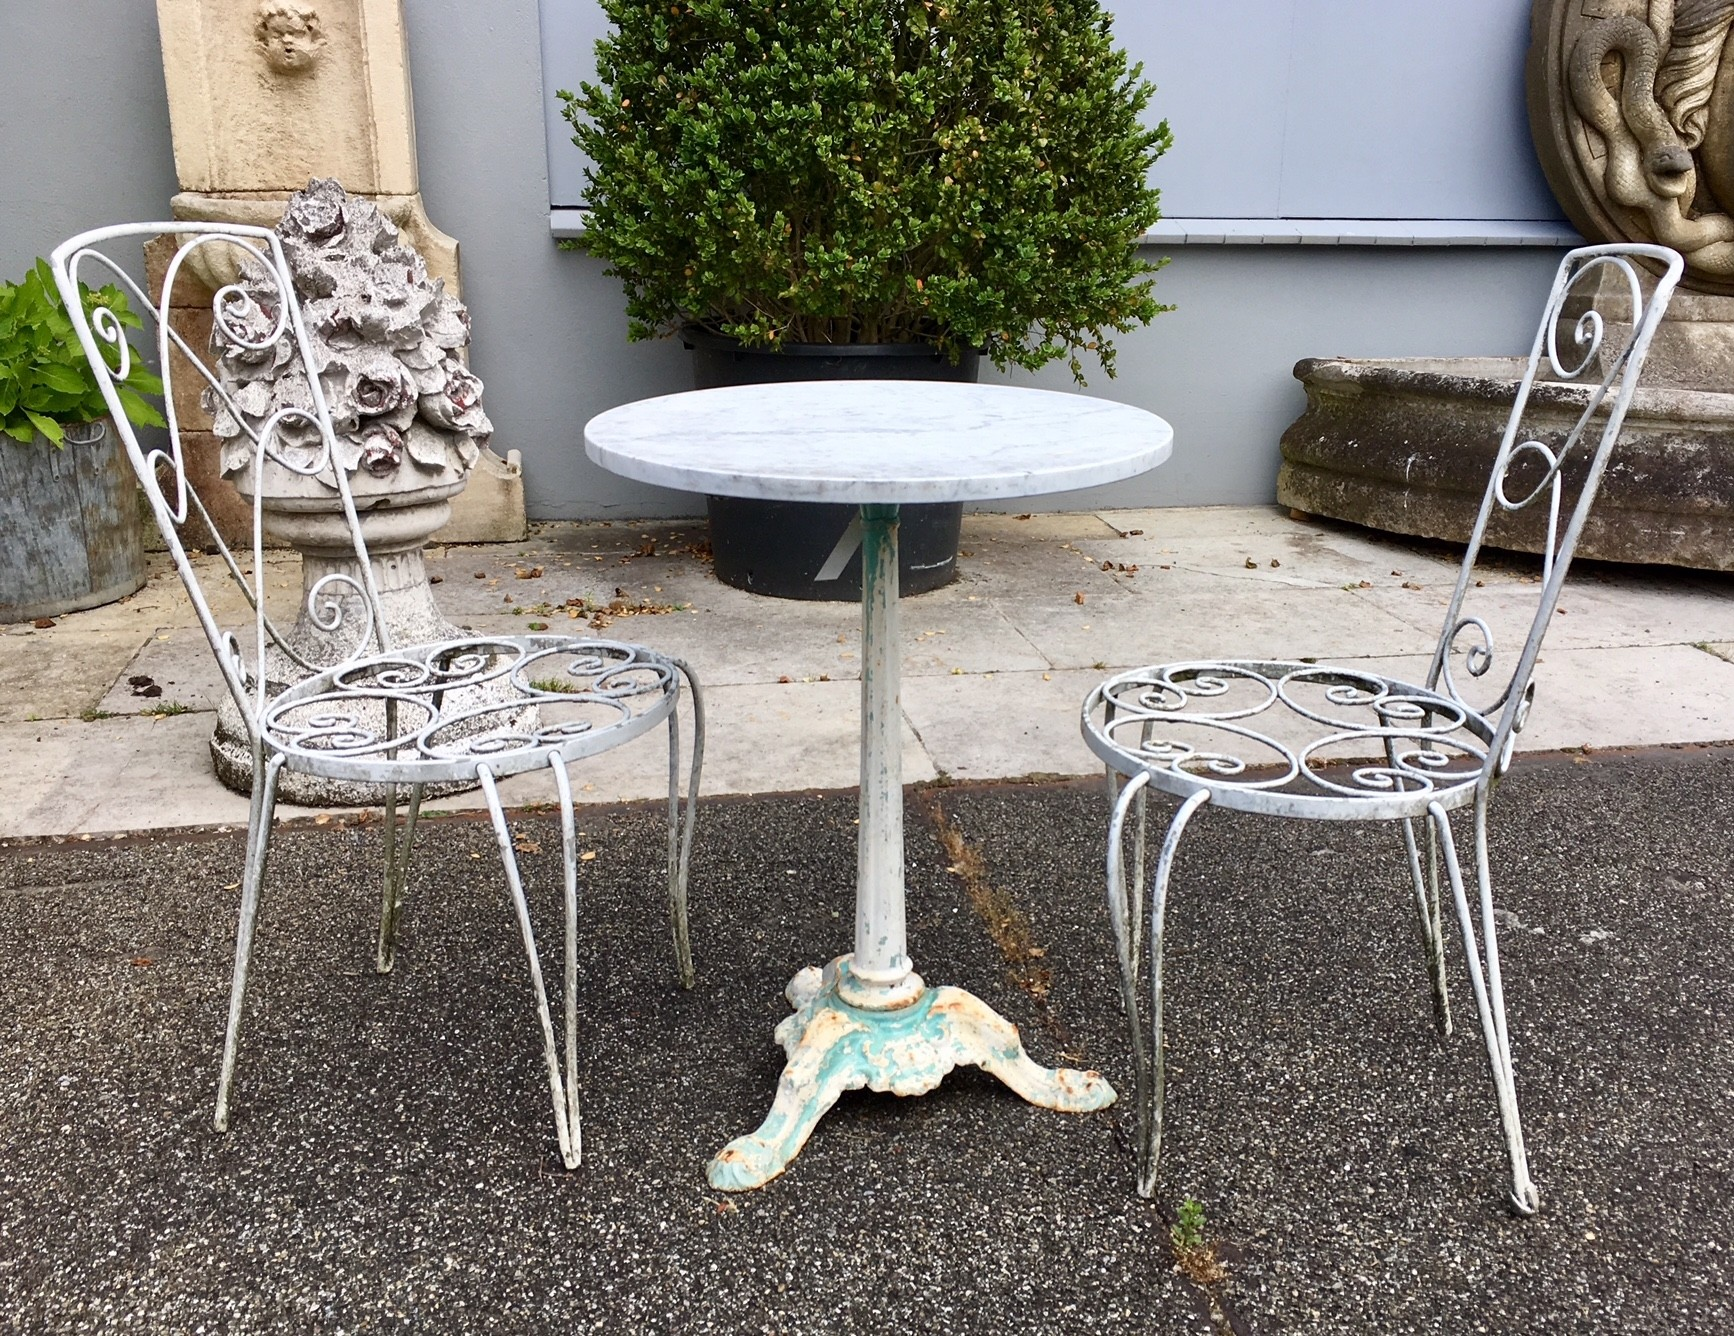 Antique garden table with two chairs